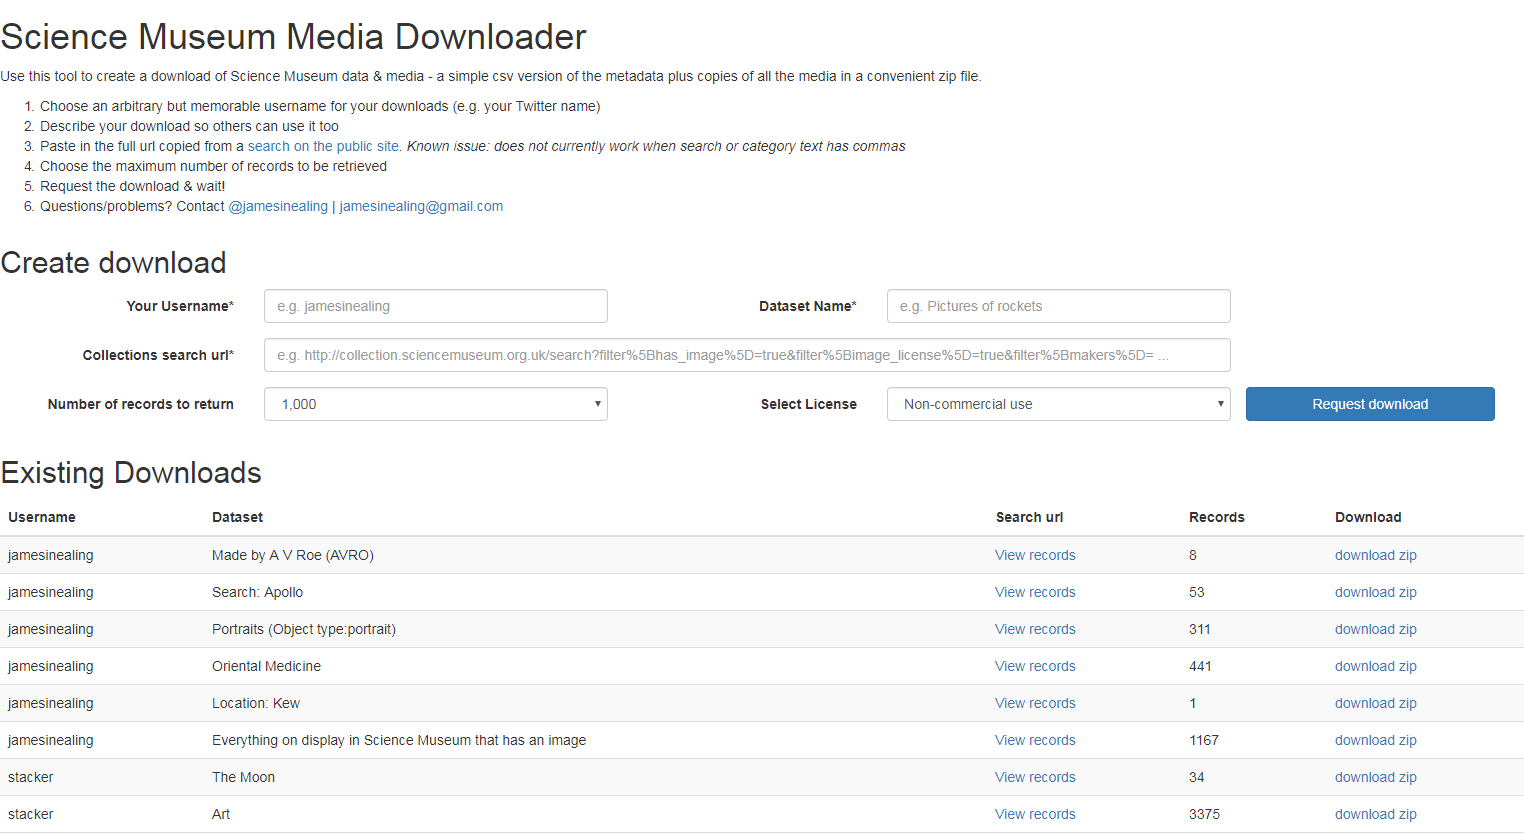 Science Museum Media Downloader interface